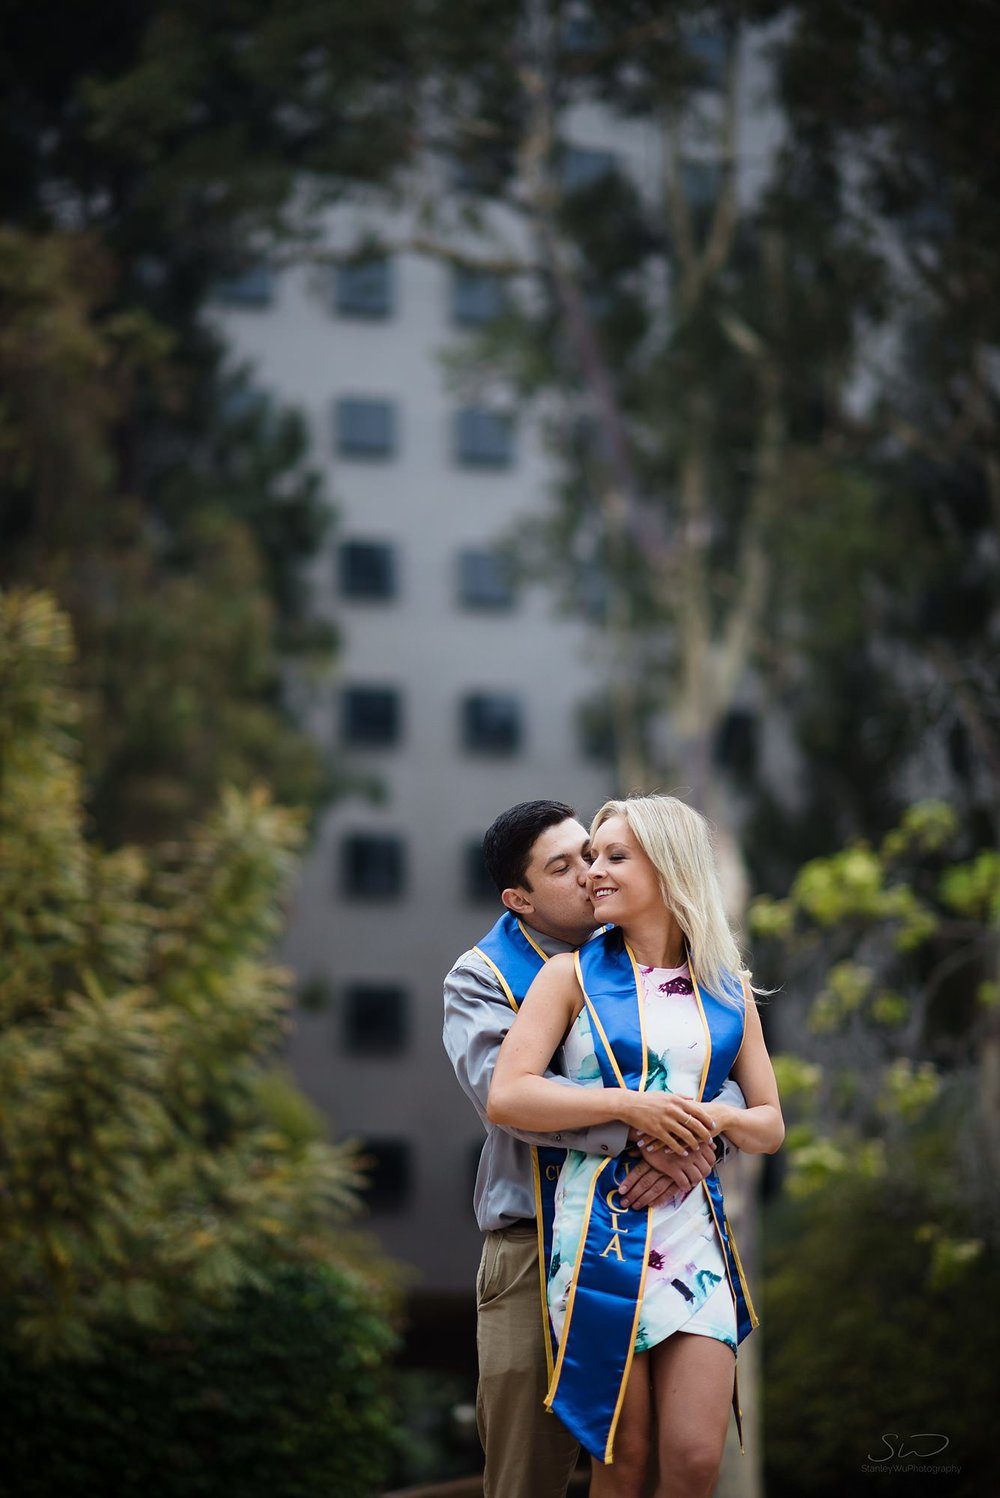 beautiful and epic graduation senior portrait of a couple embracing on steps with a compressed background of bunche hall at ucla in los angeles